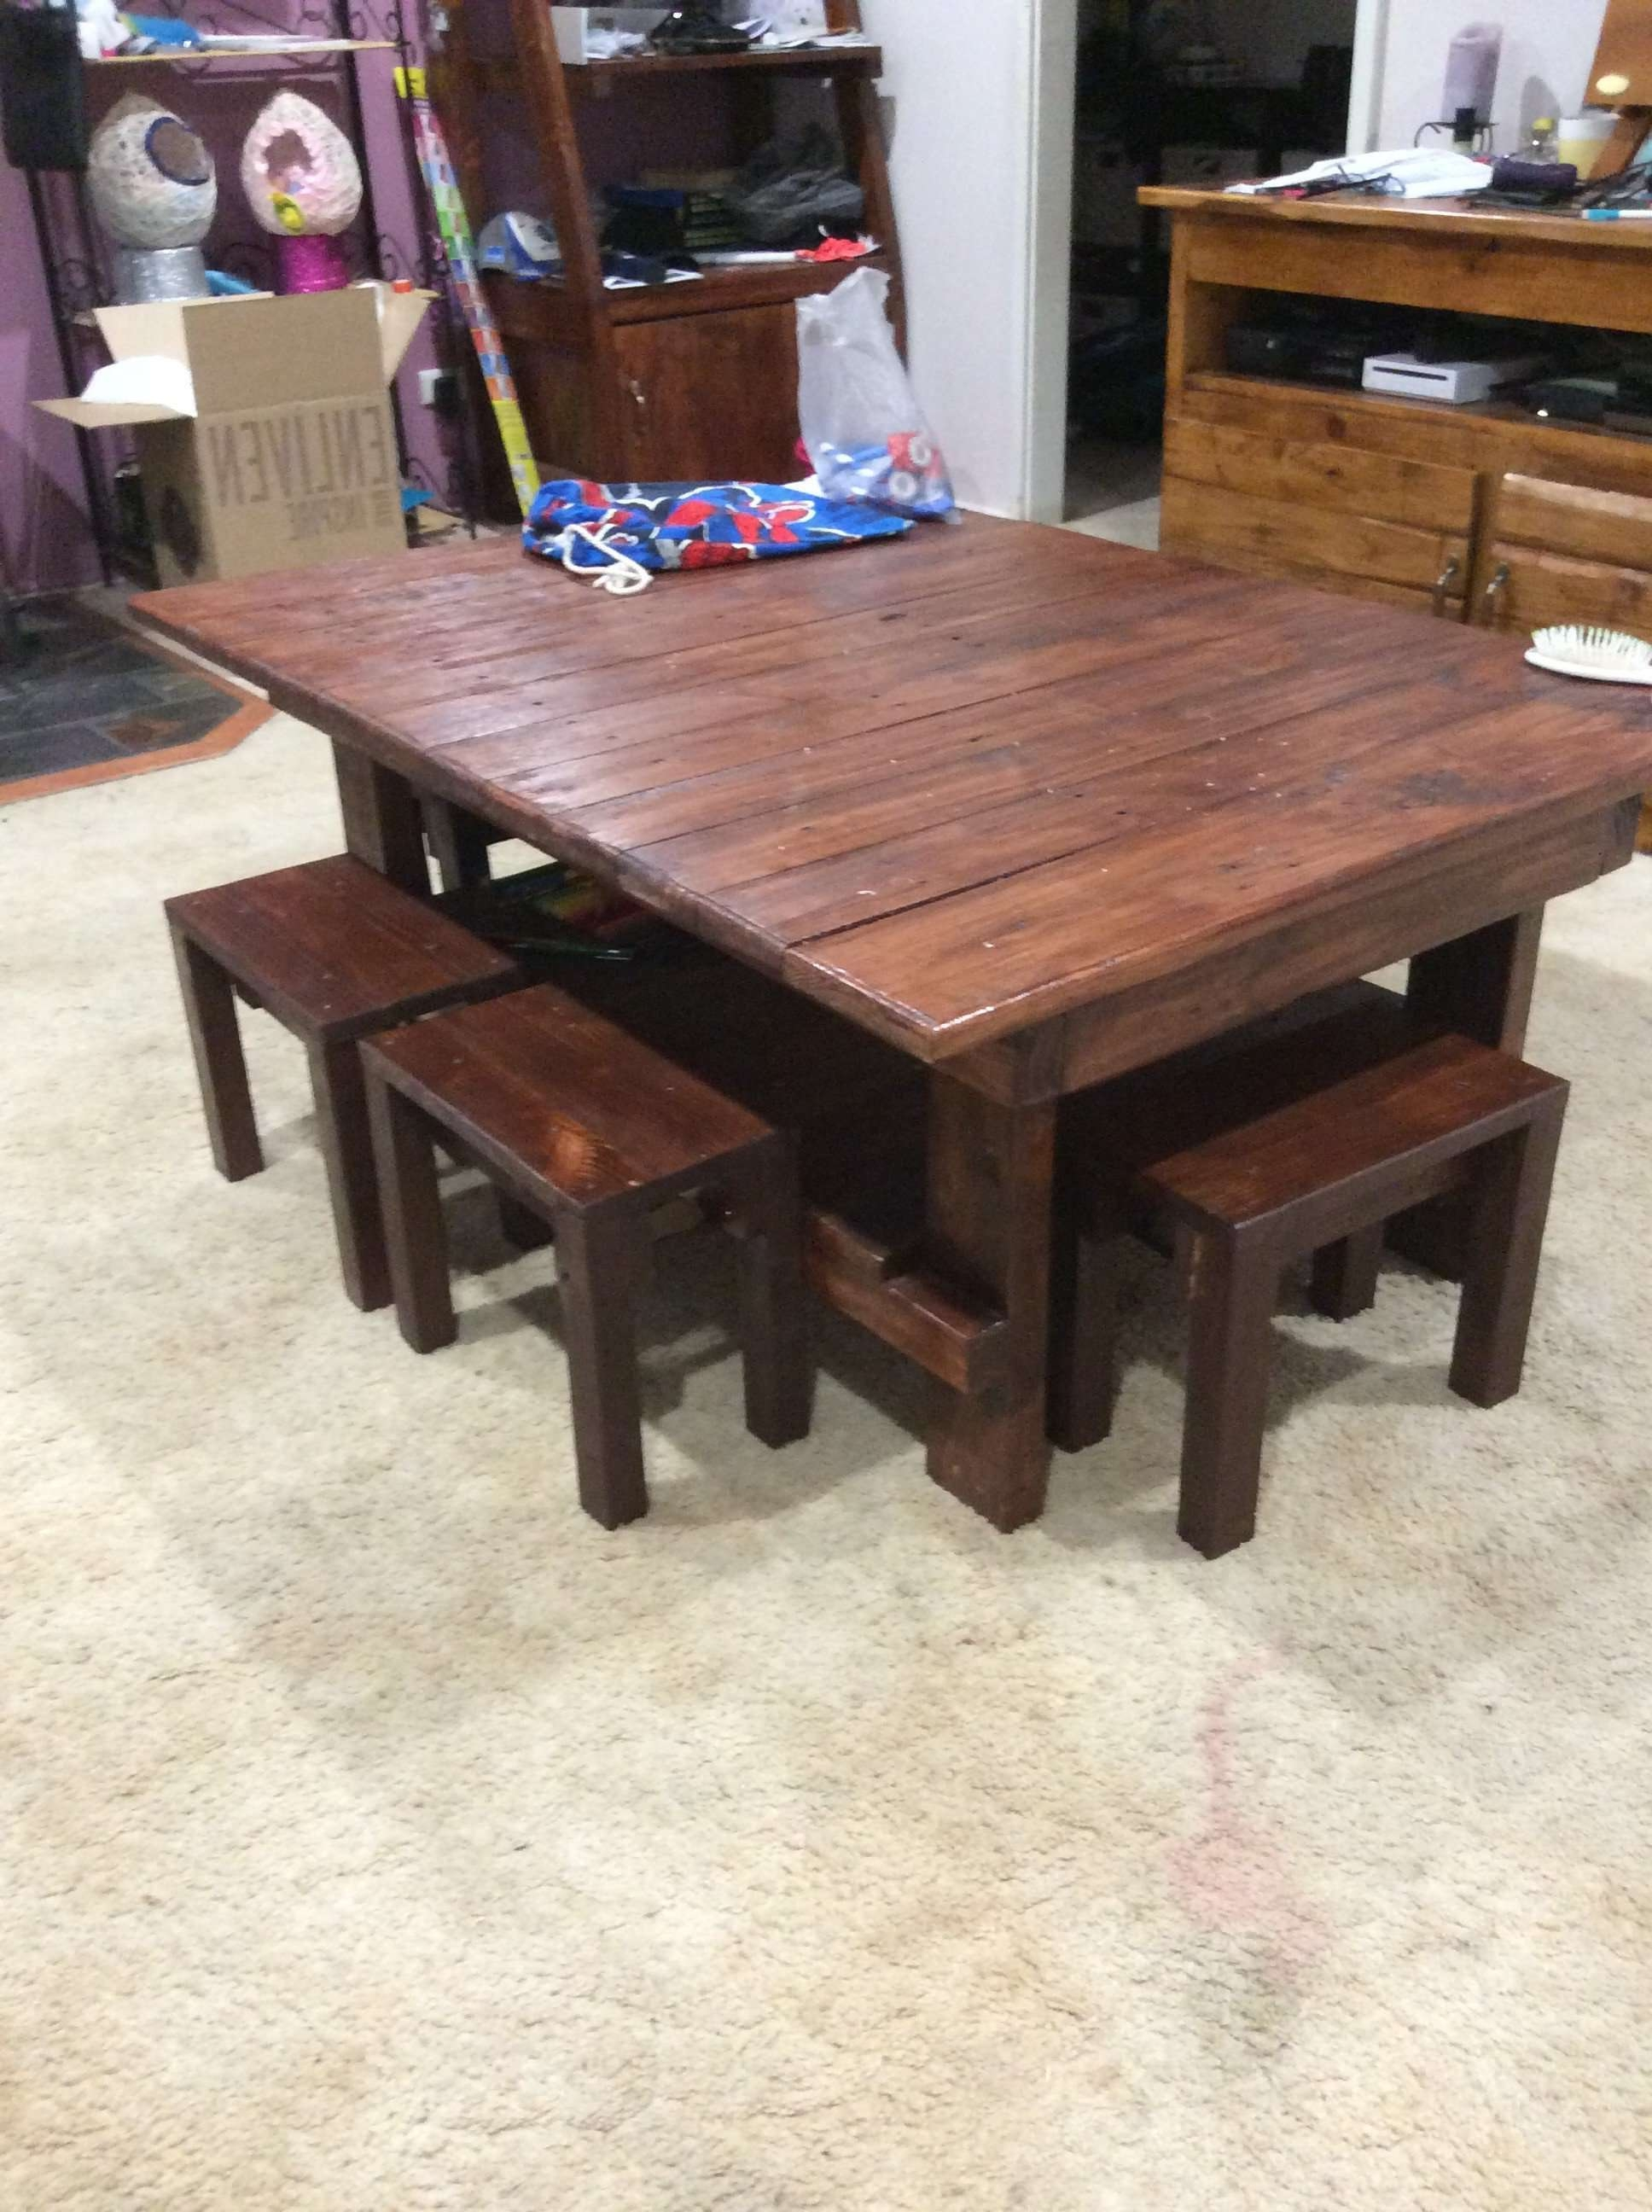 Coffee Table & Chairs For The Kids • 1001 Pallets With Trendy Coffee Table With Chairs (View 4 of 20)